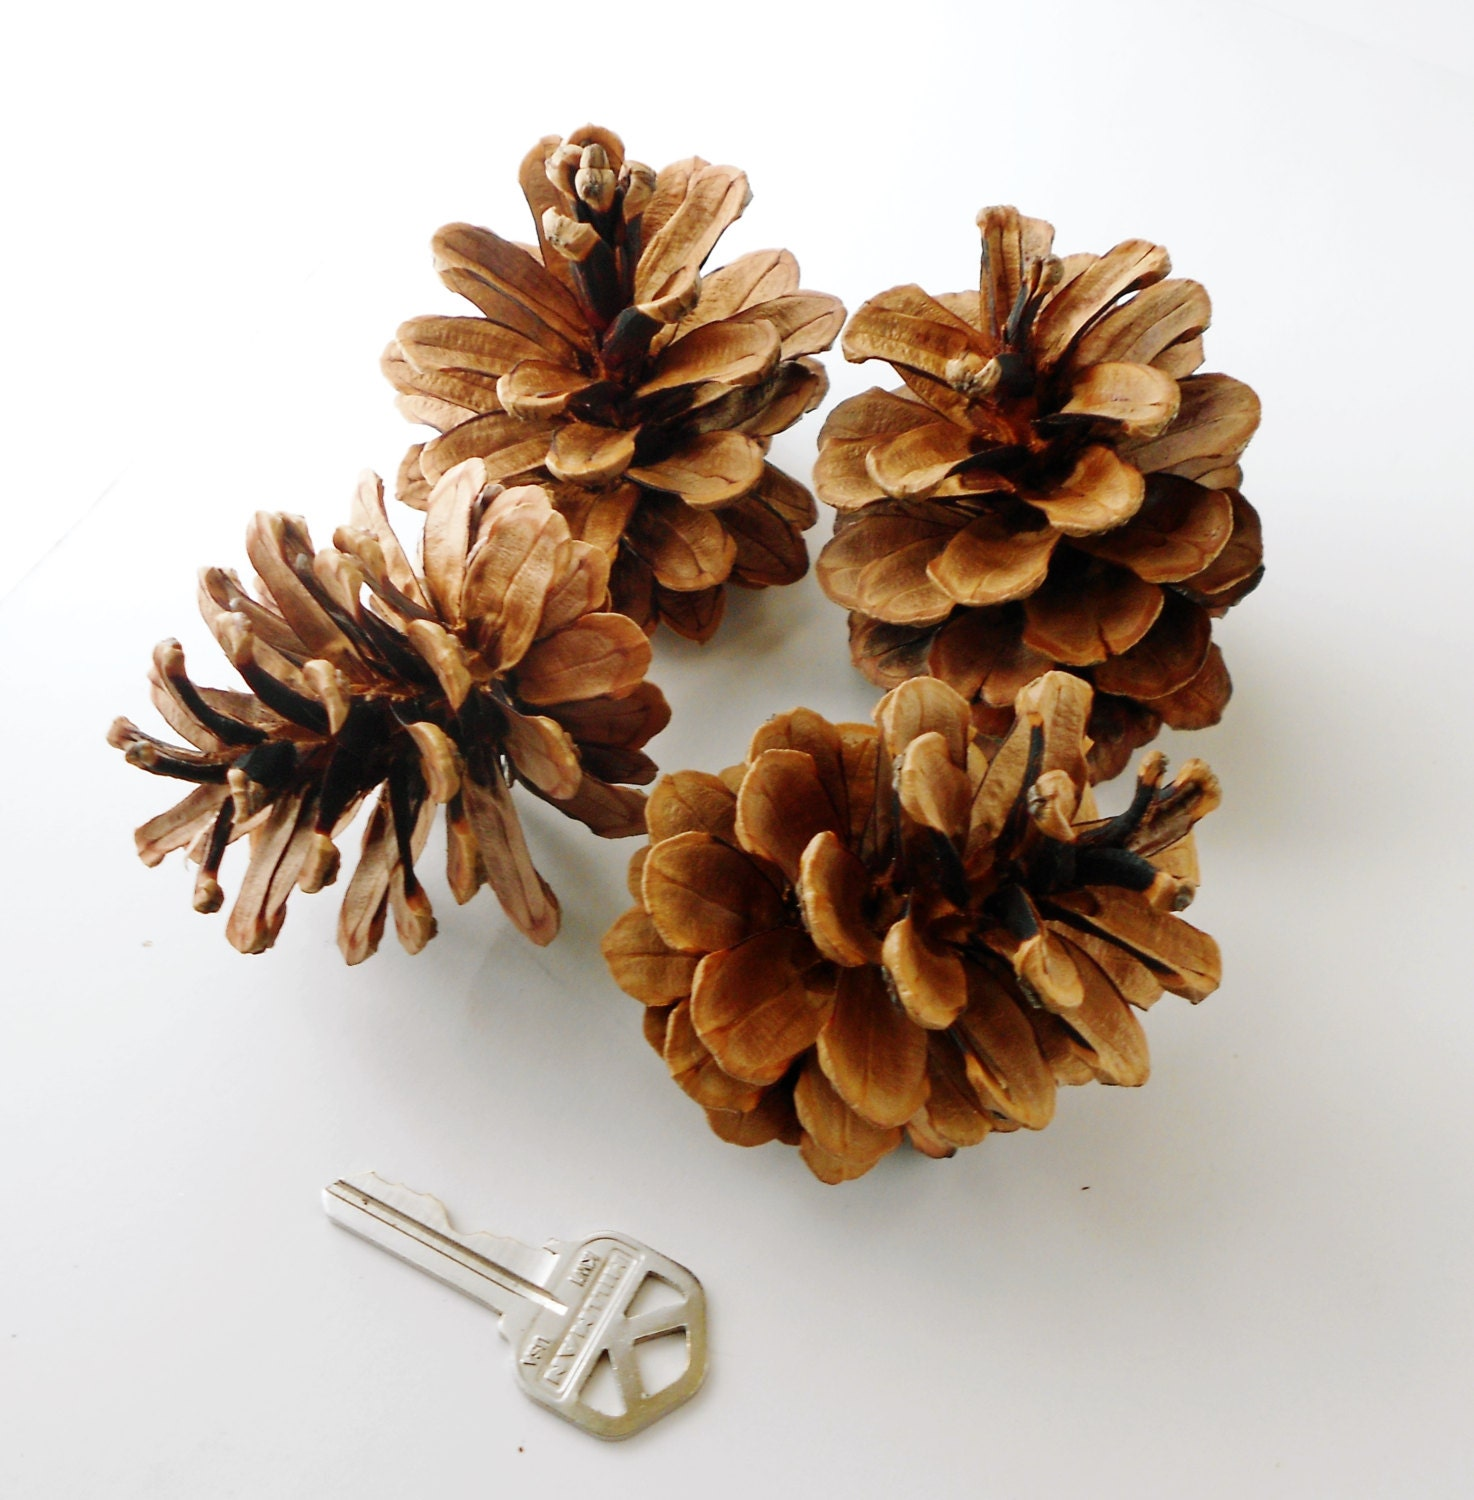 25 large pine cones handpicked for crafting for Large pine cones